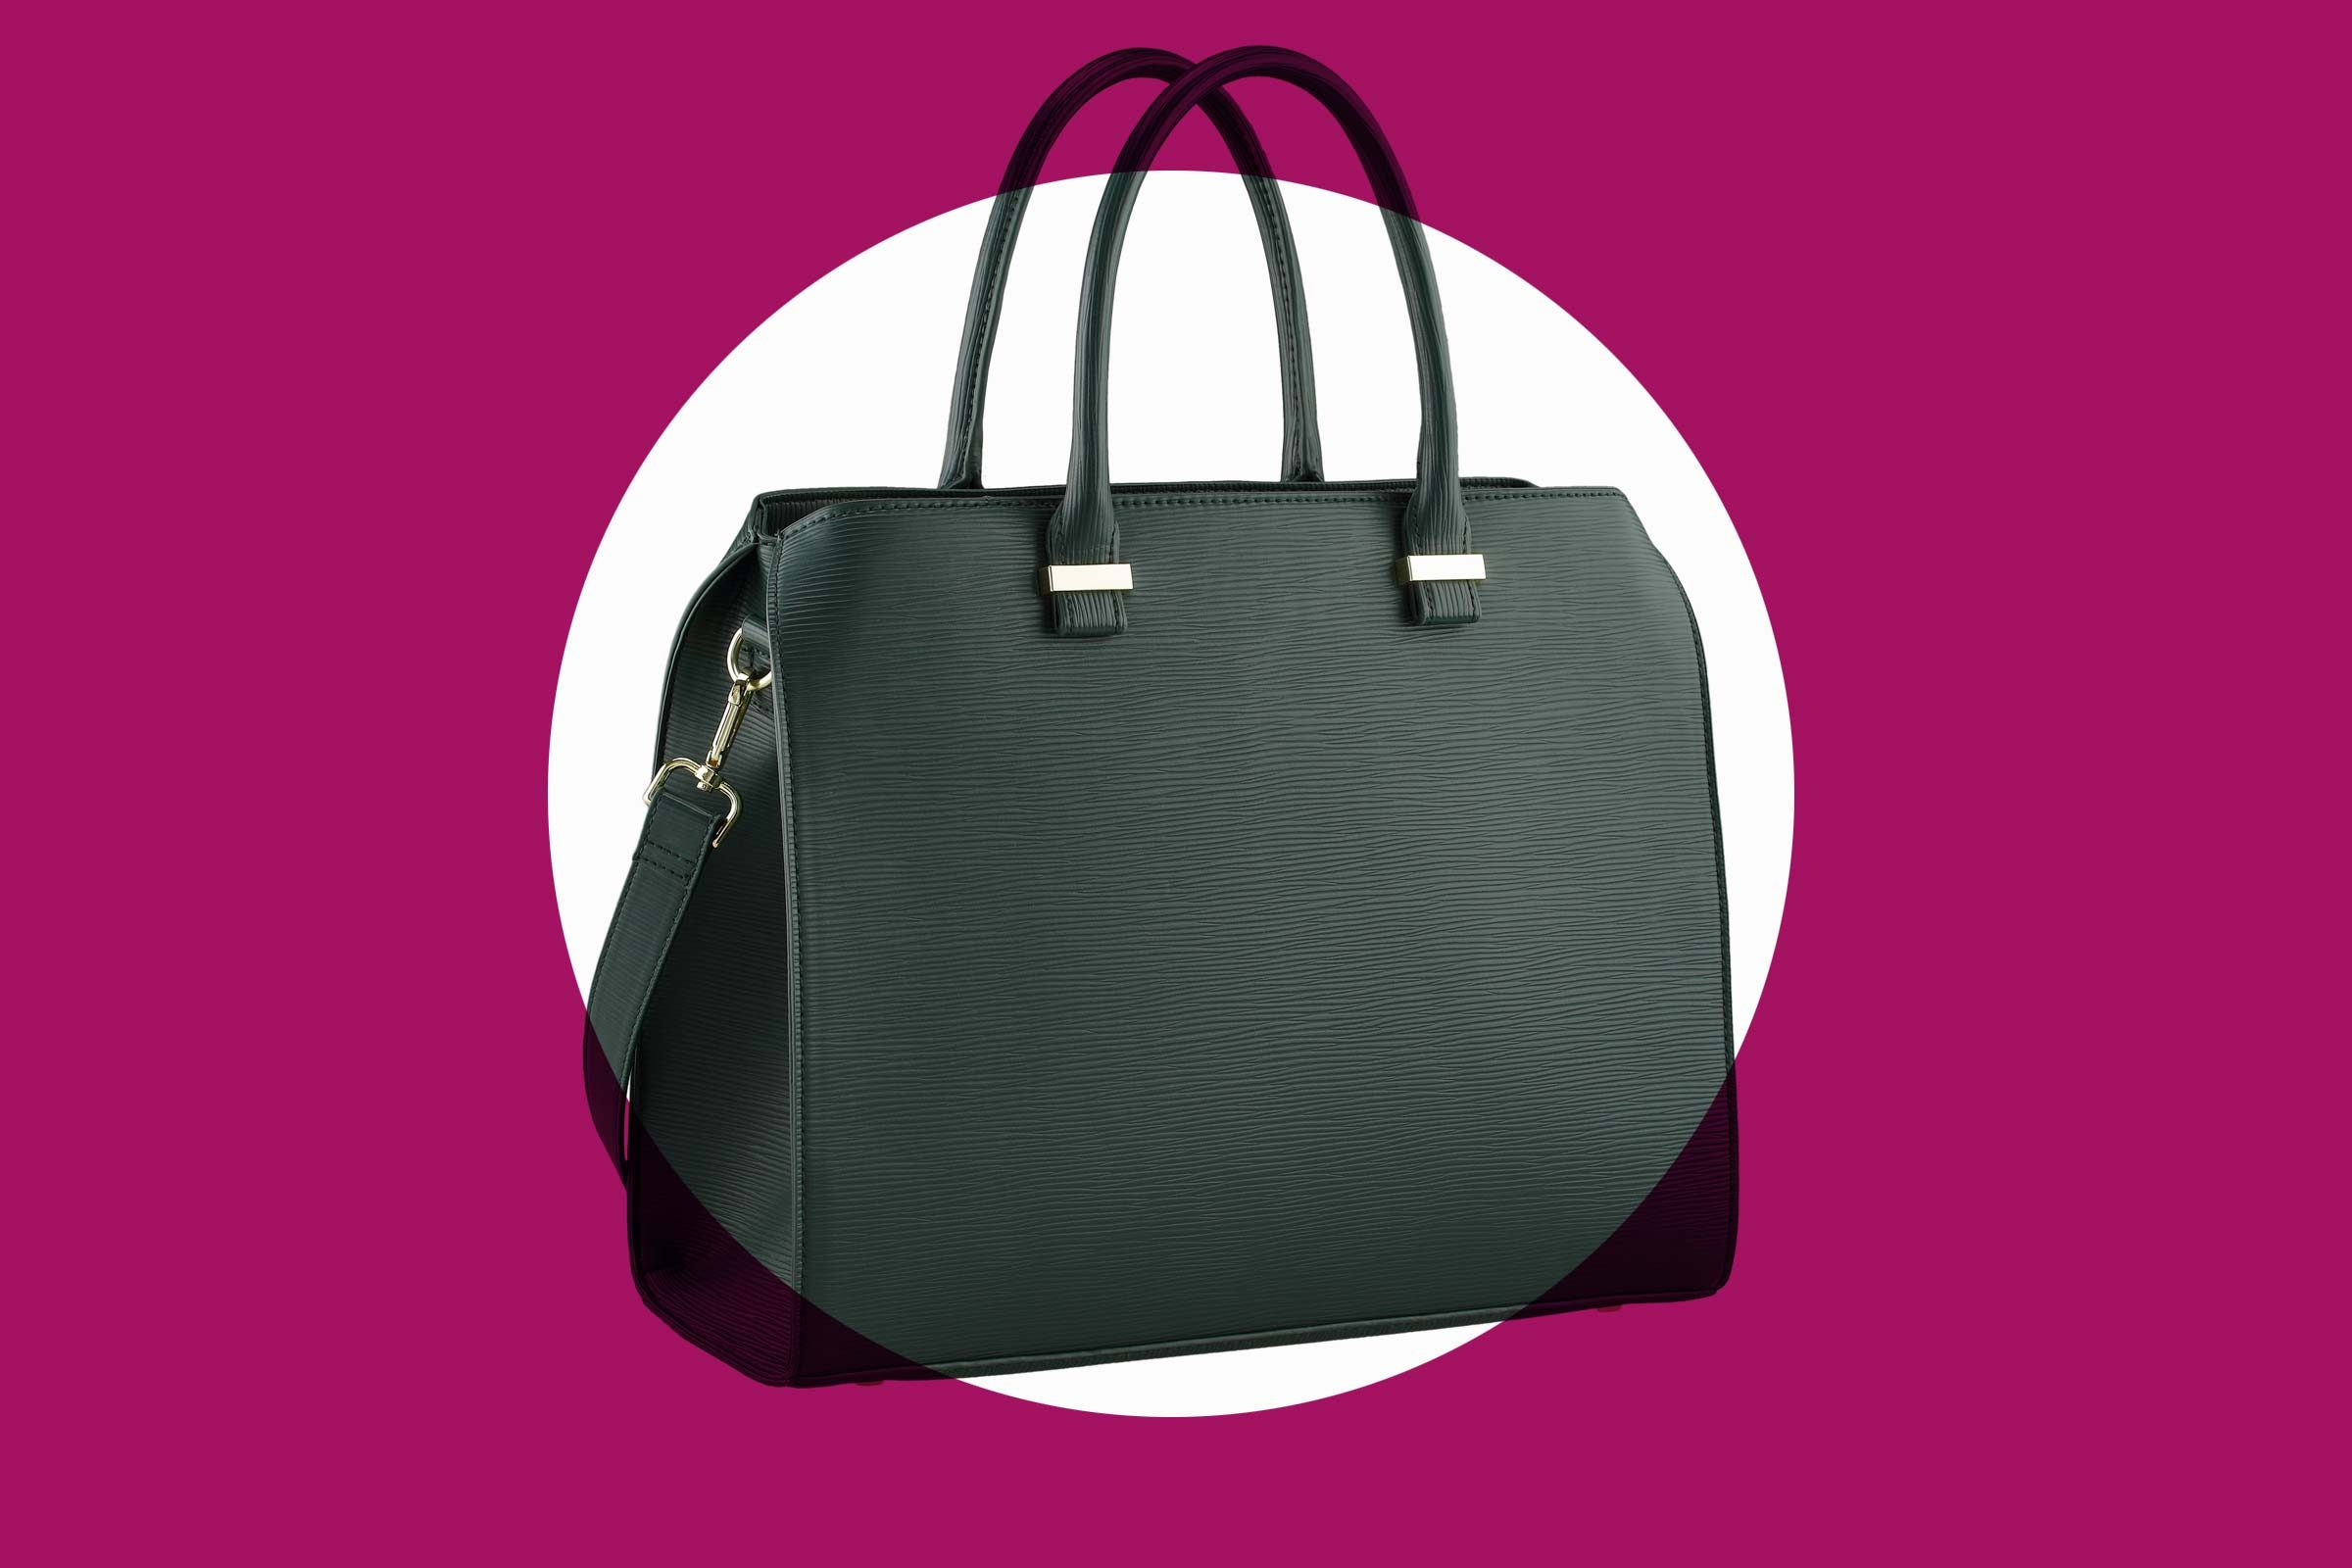 Classic handbags every woman should own readers digest jpg 2400x1600 Classic  bags f7d758f56c